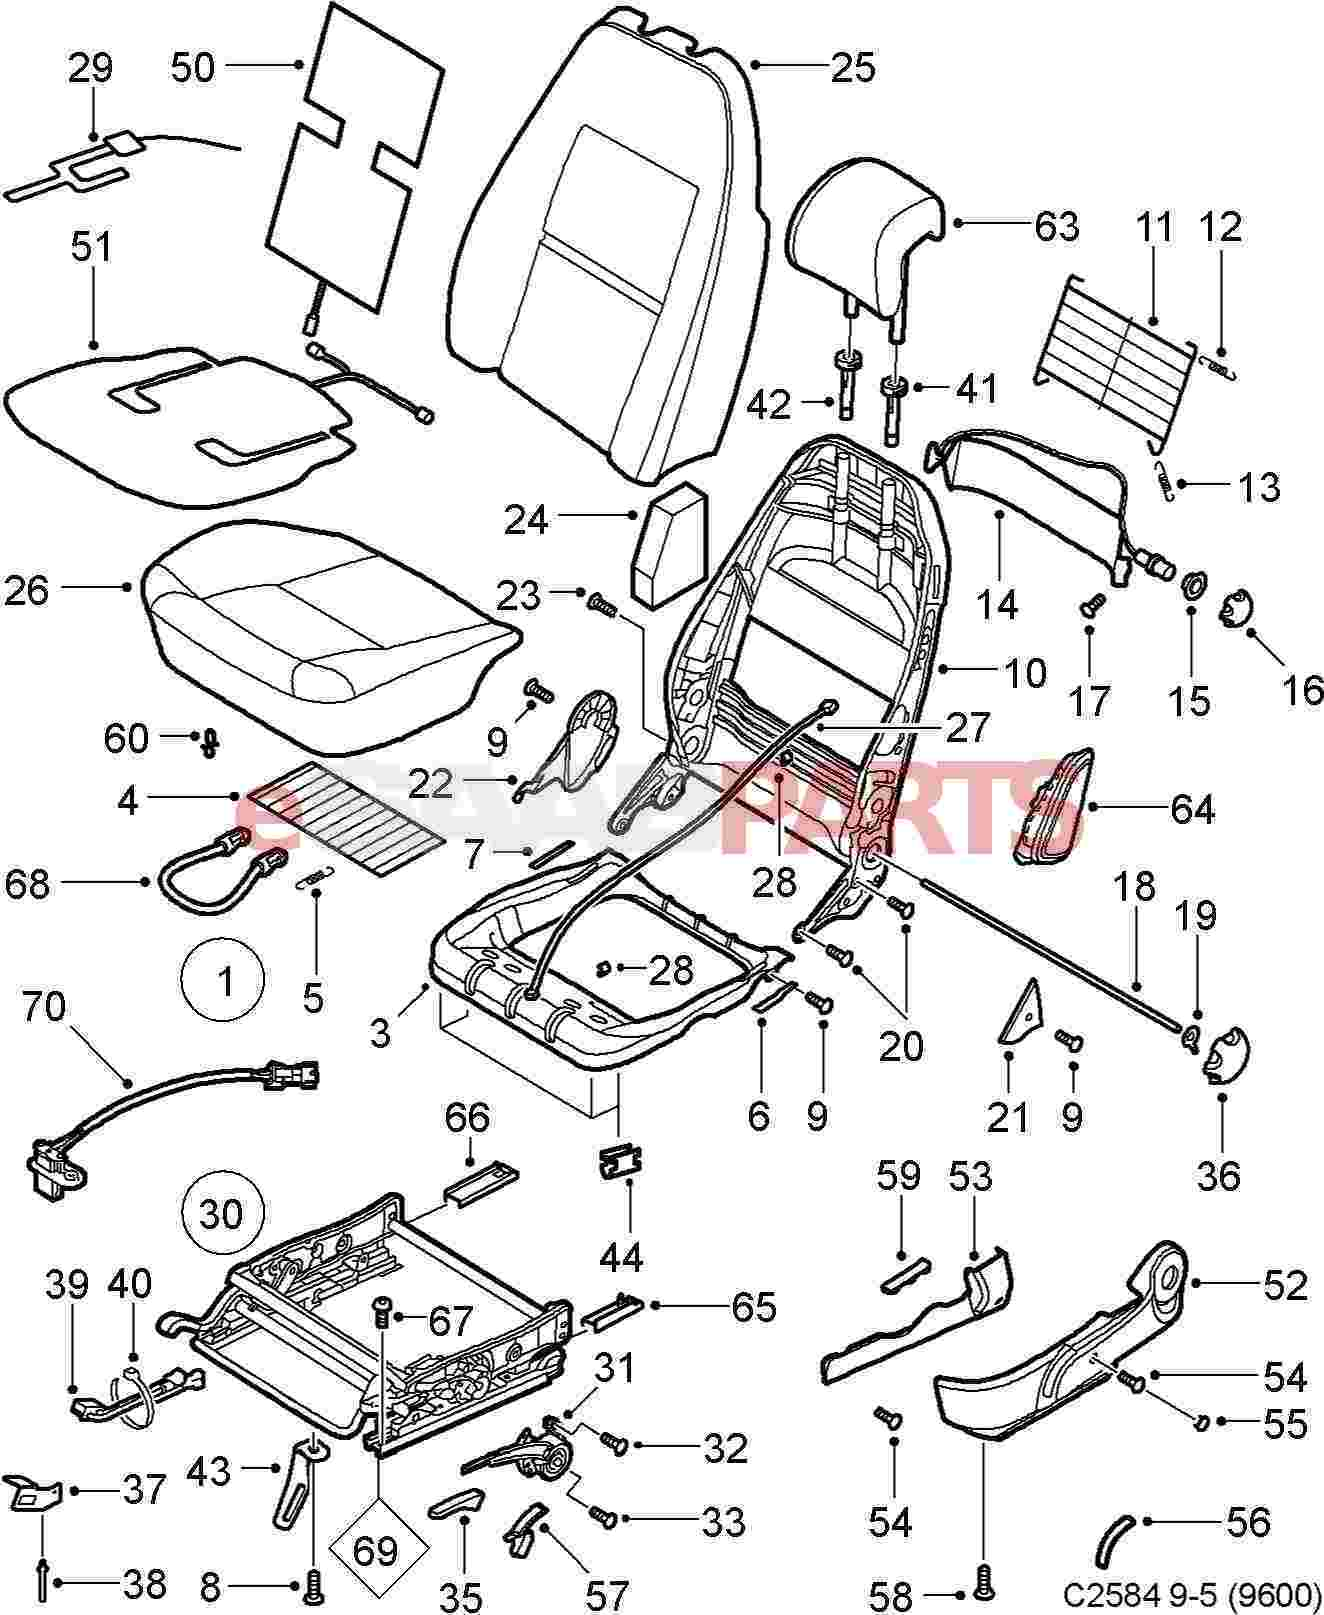 esaabparts com saab 9 5 9600 u003e car body internal parts u003e seat rh  esaabparts com Saab 9 5 Parts Diagram Saab 9 5 Parts Diagram